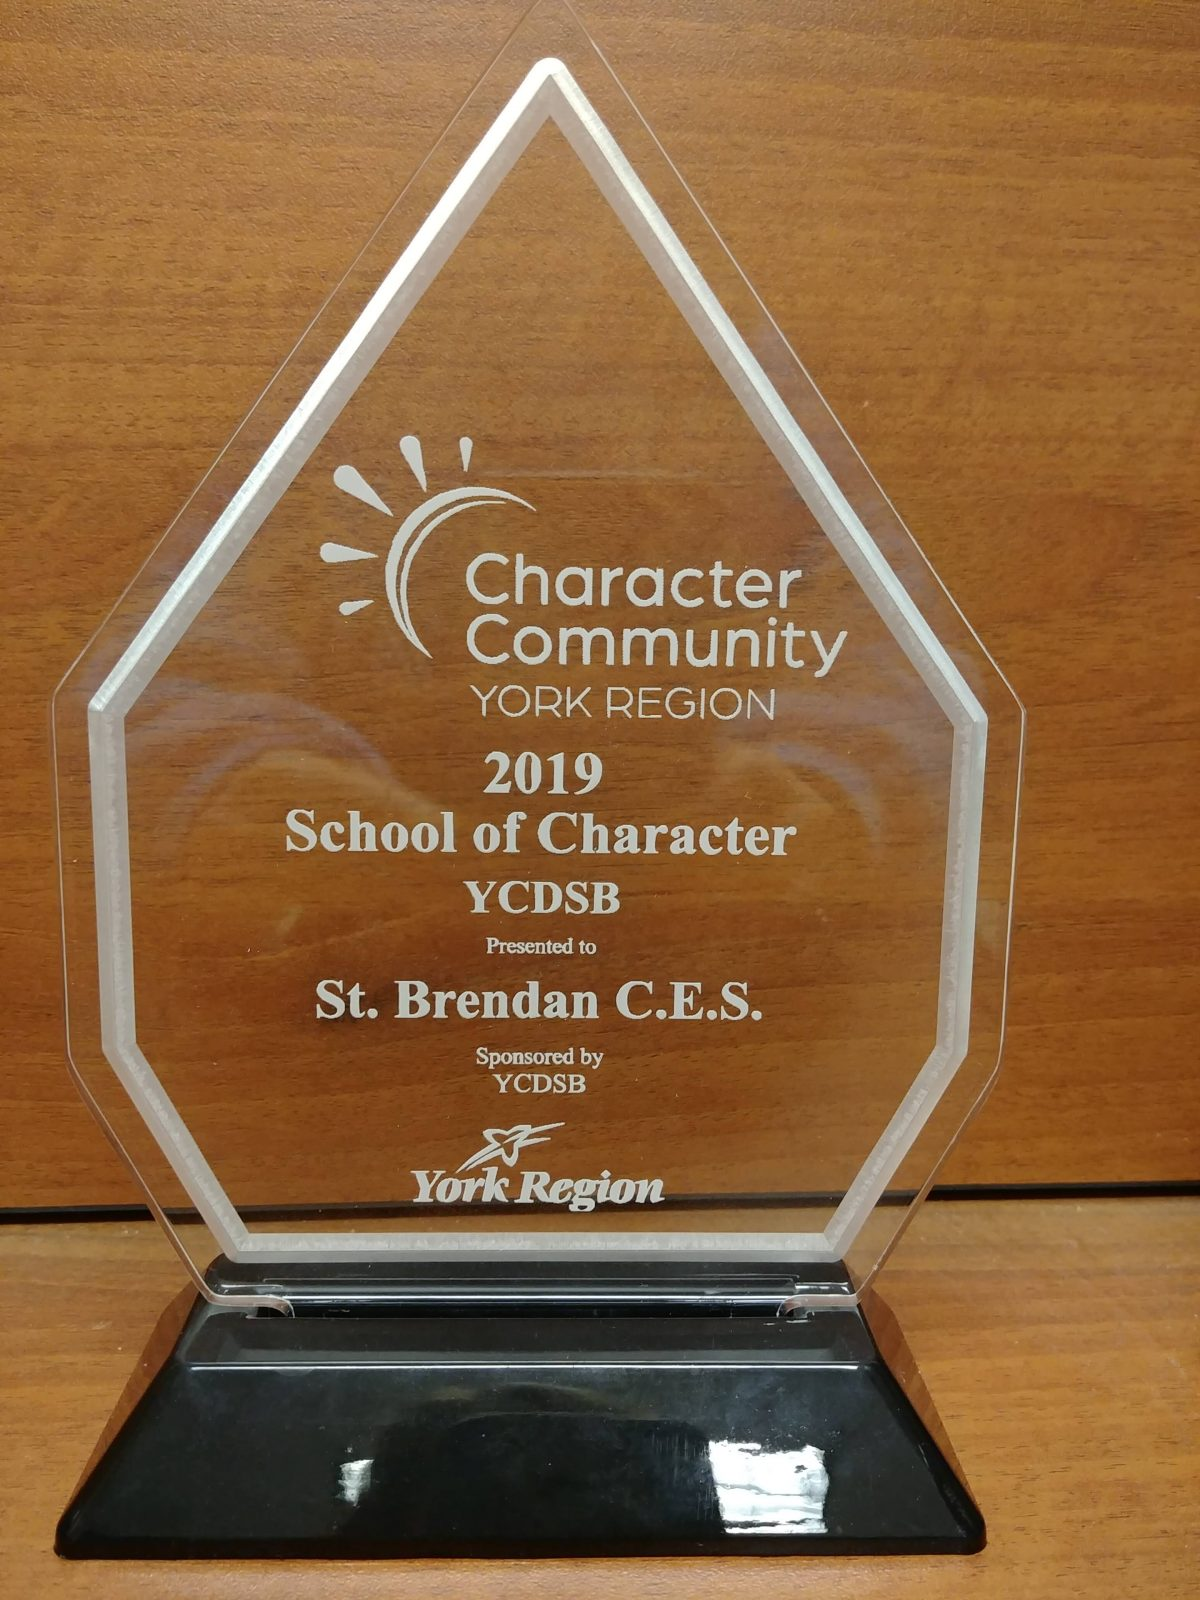 SBN Awarded a School of Character!